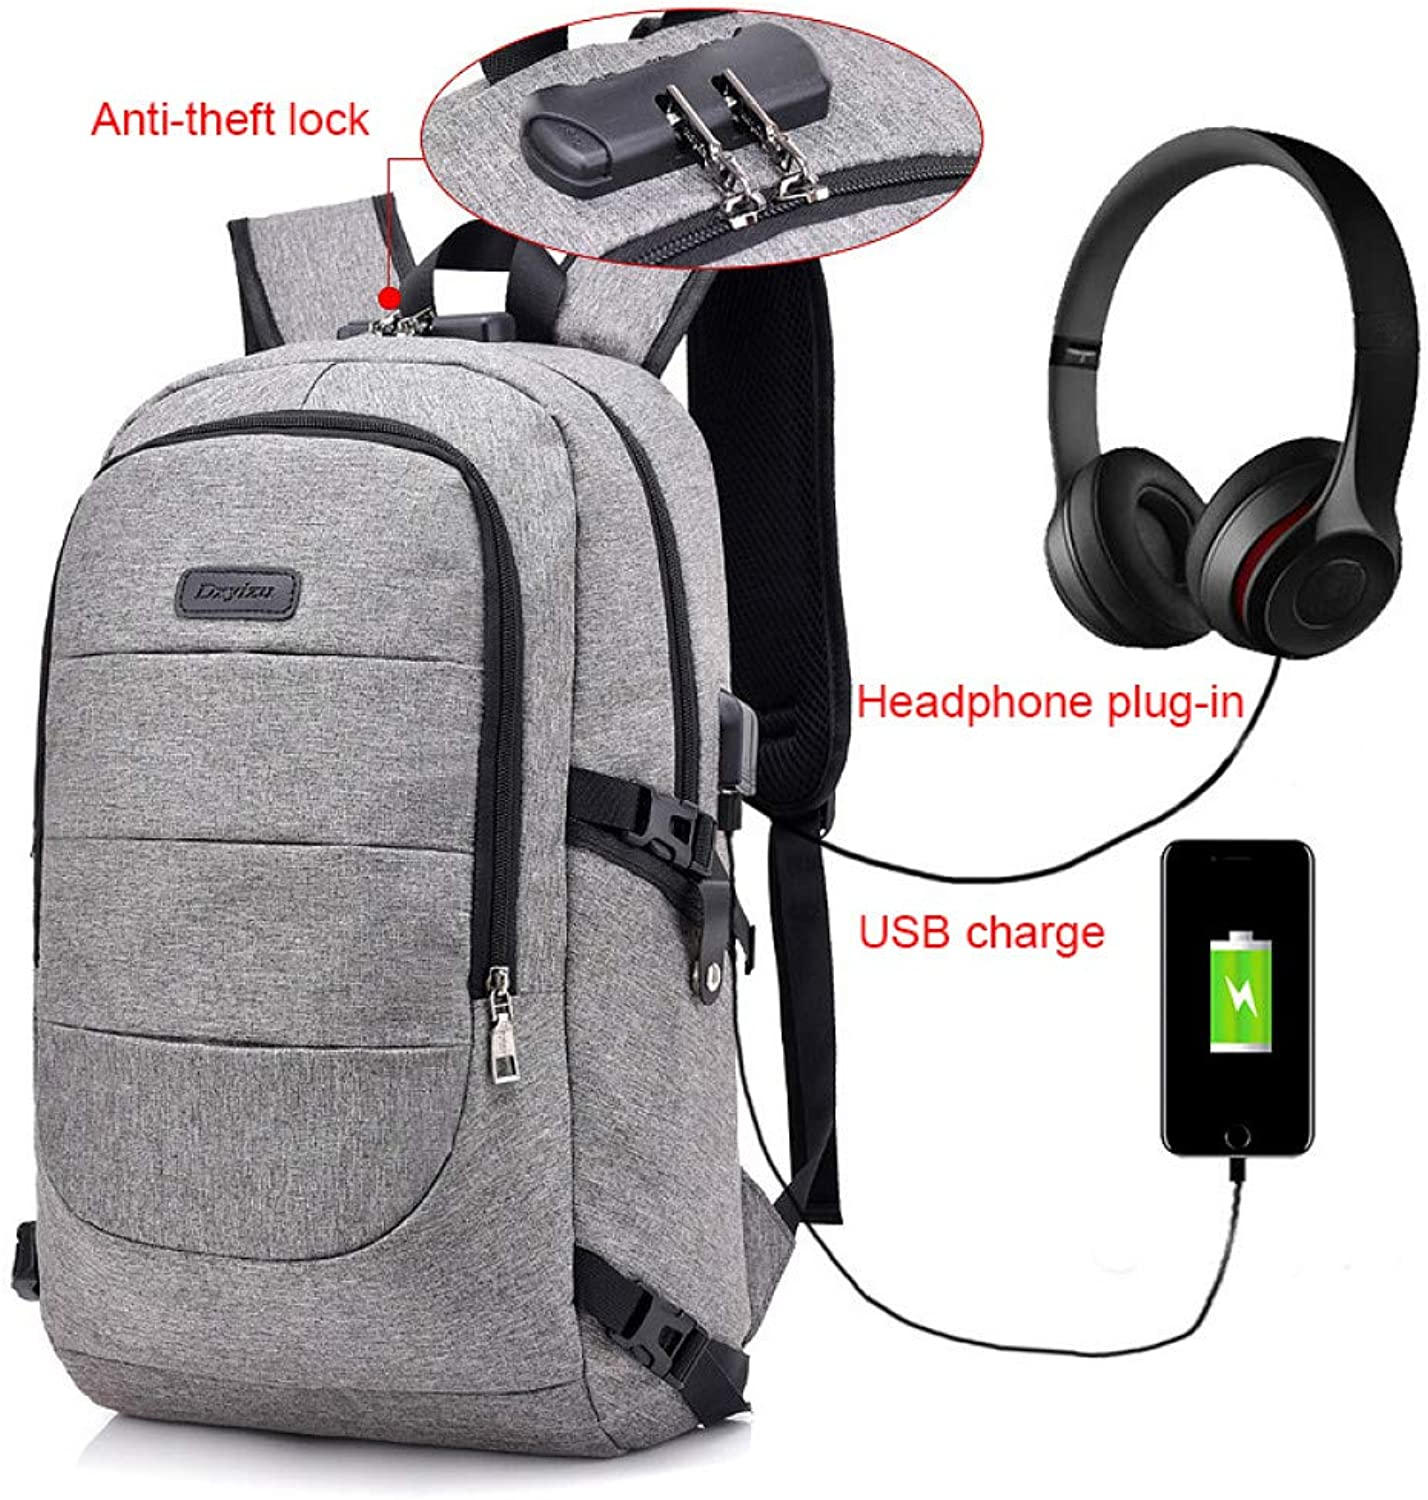 HUYANNABAO External USB Charge Backpack Men Anti Theft Lock Laptop Bag Large School Bags Male Travel Backpacks with Headphone Plug